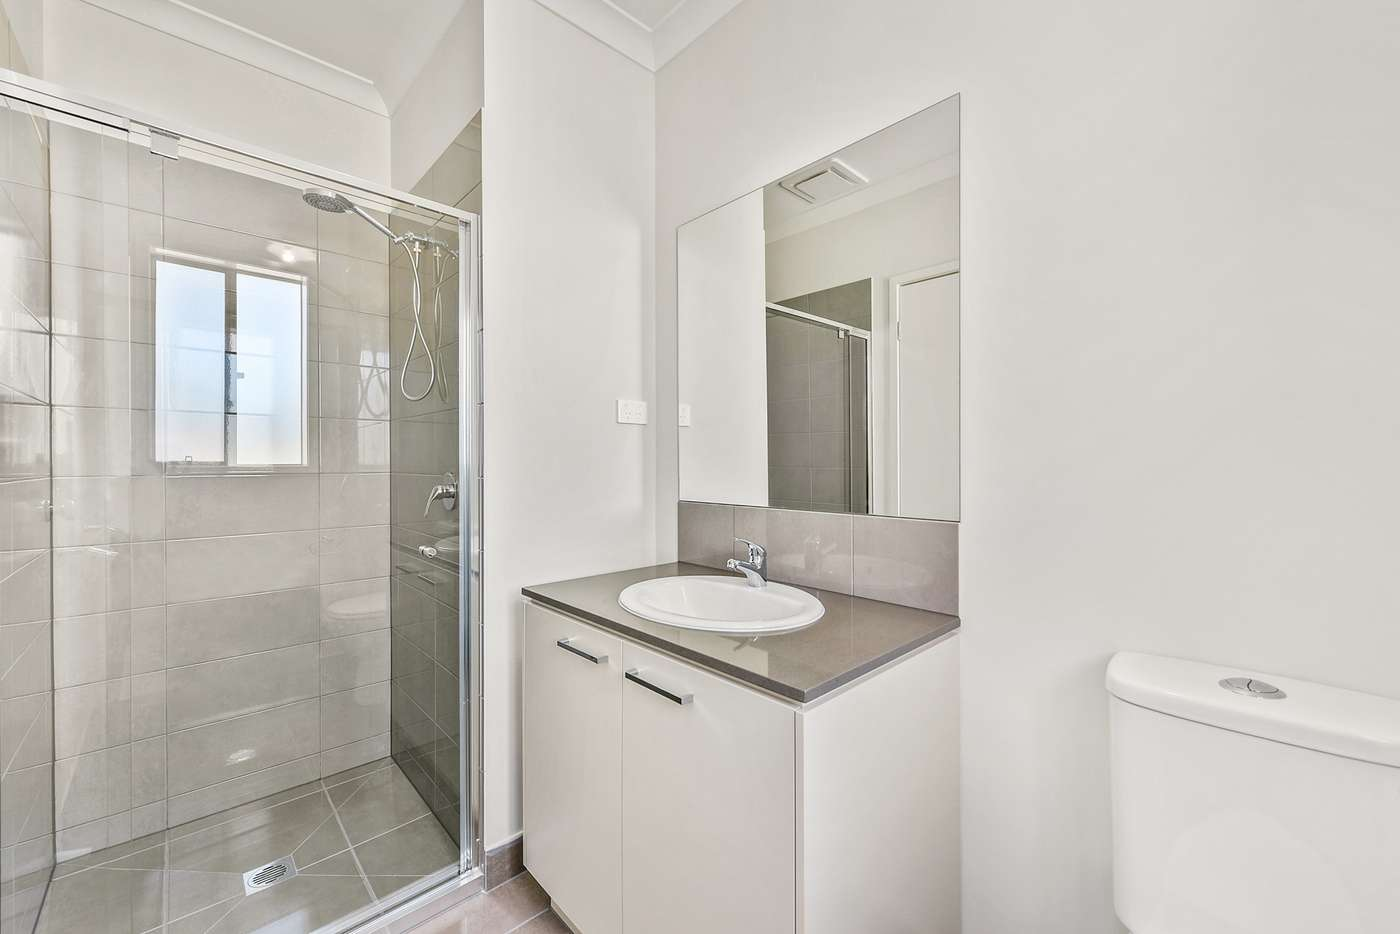 Sixth view of Homely house listing, 1 Serengeti Street, Clyde North VIC 3978